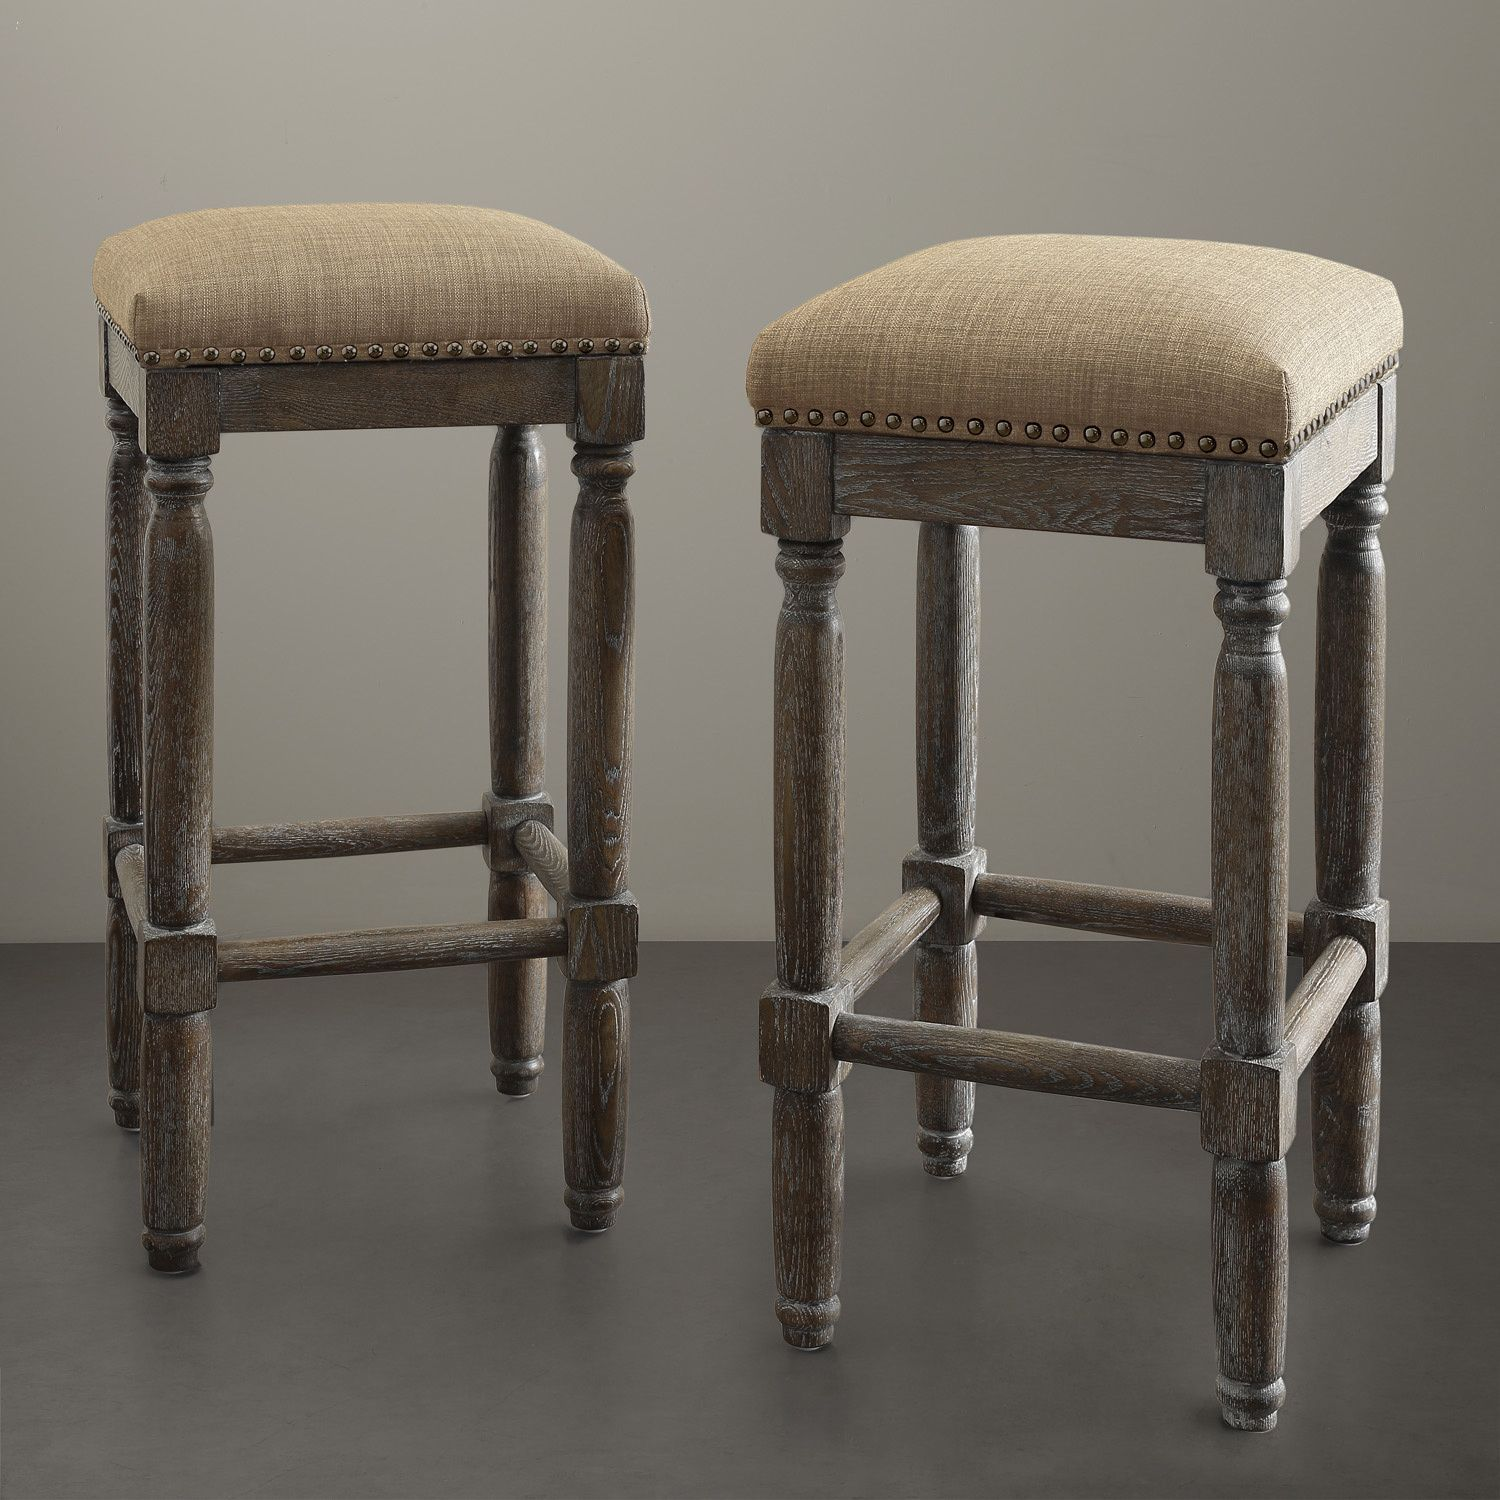 A Great Addition To Just About Any Room In The House These Renate Bar Stools